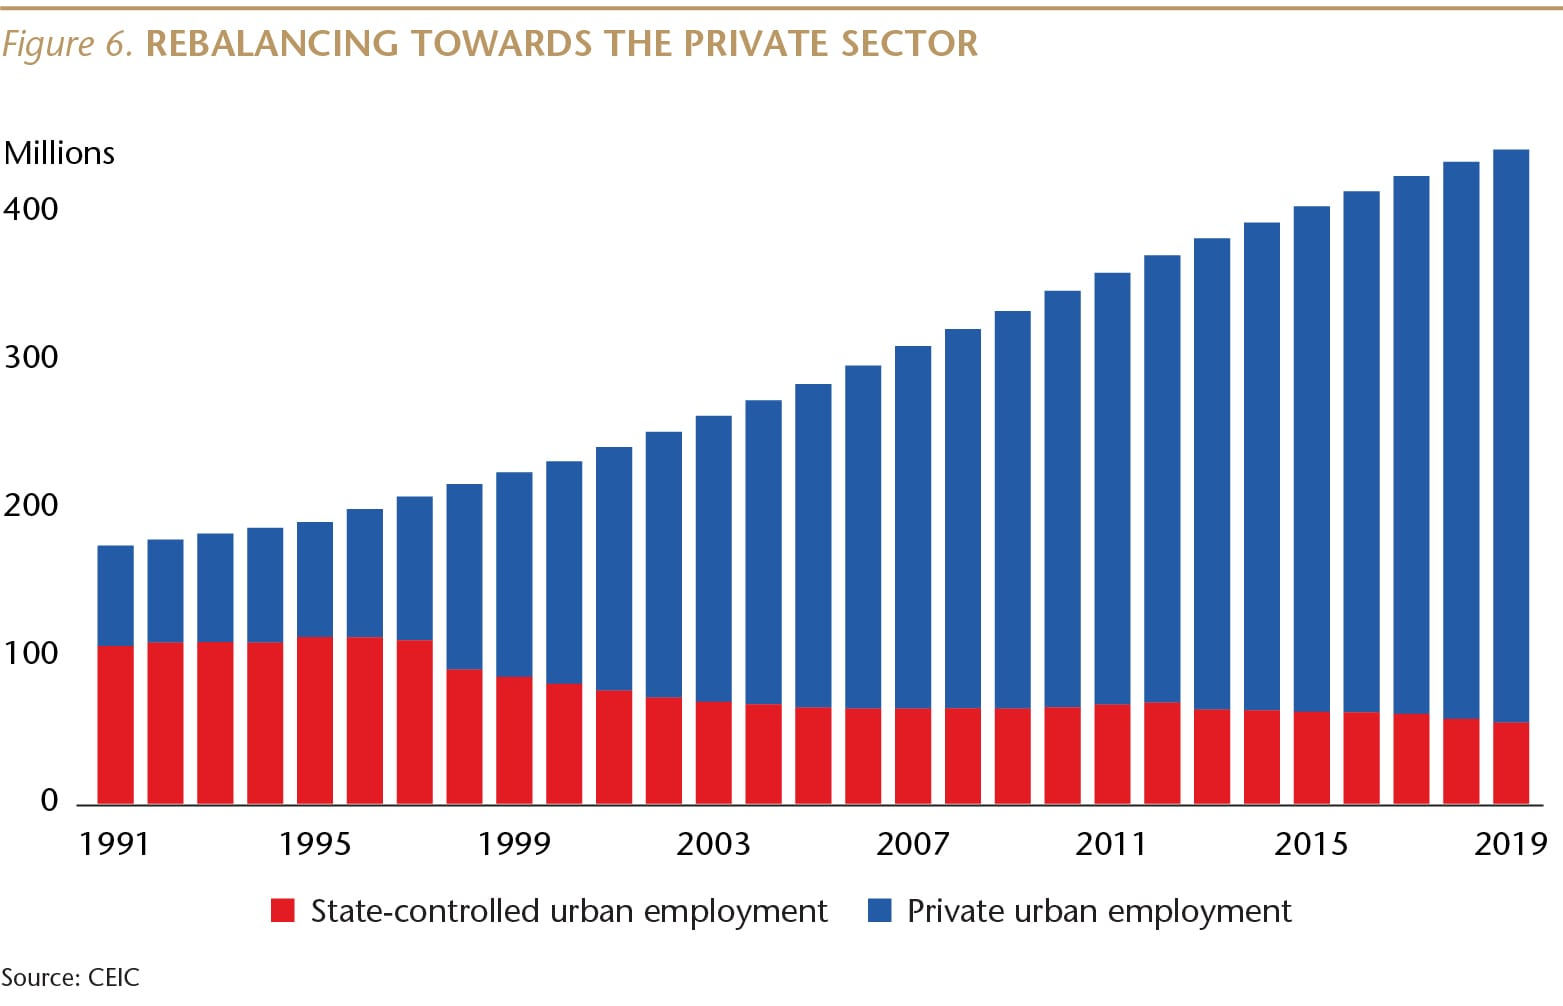 SI073_Figure 6_Rebalancing towards private sector_WEB-01-min.jpg